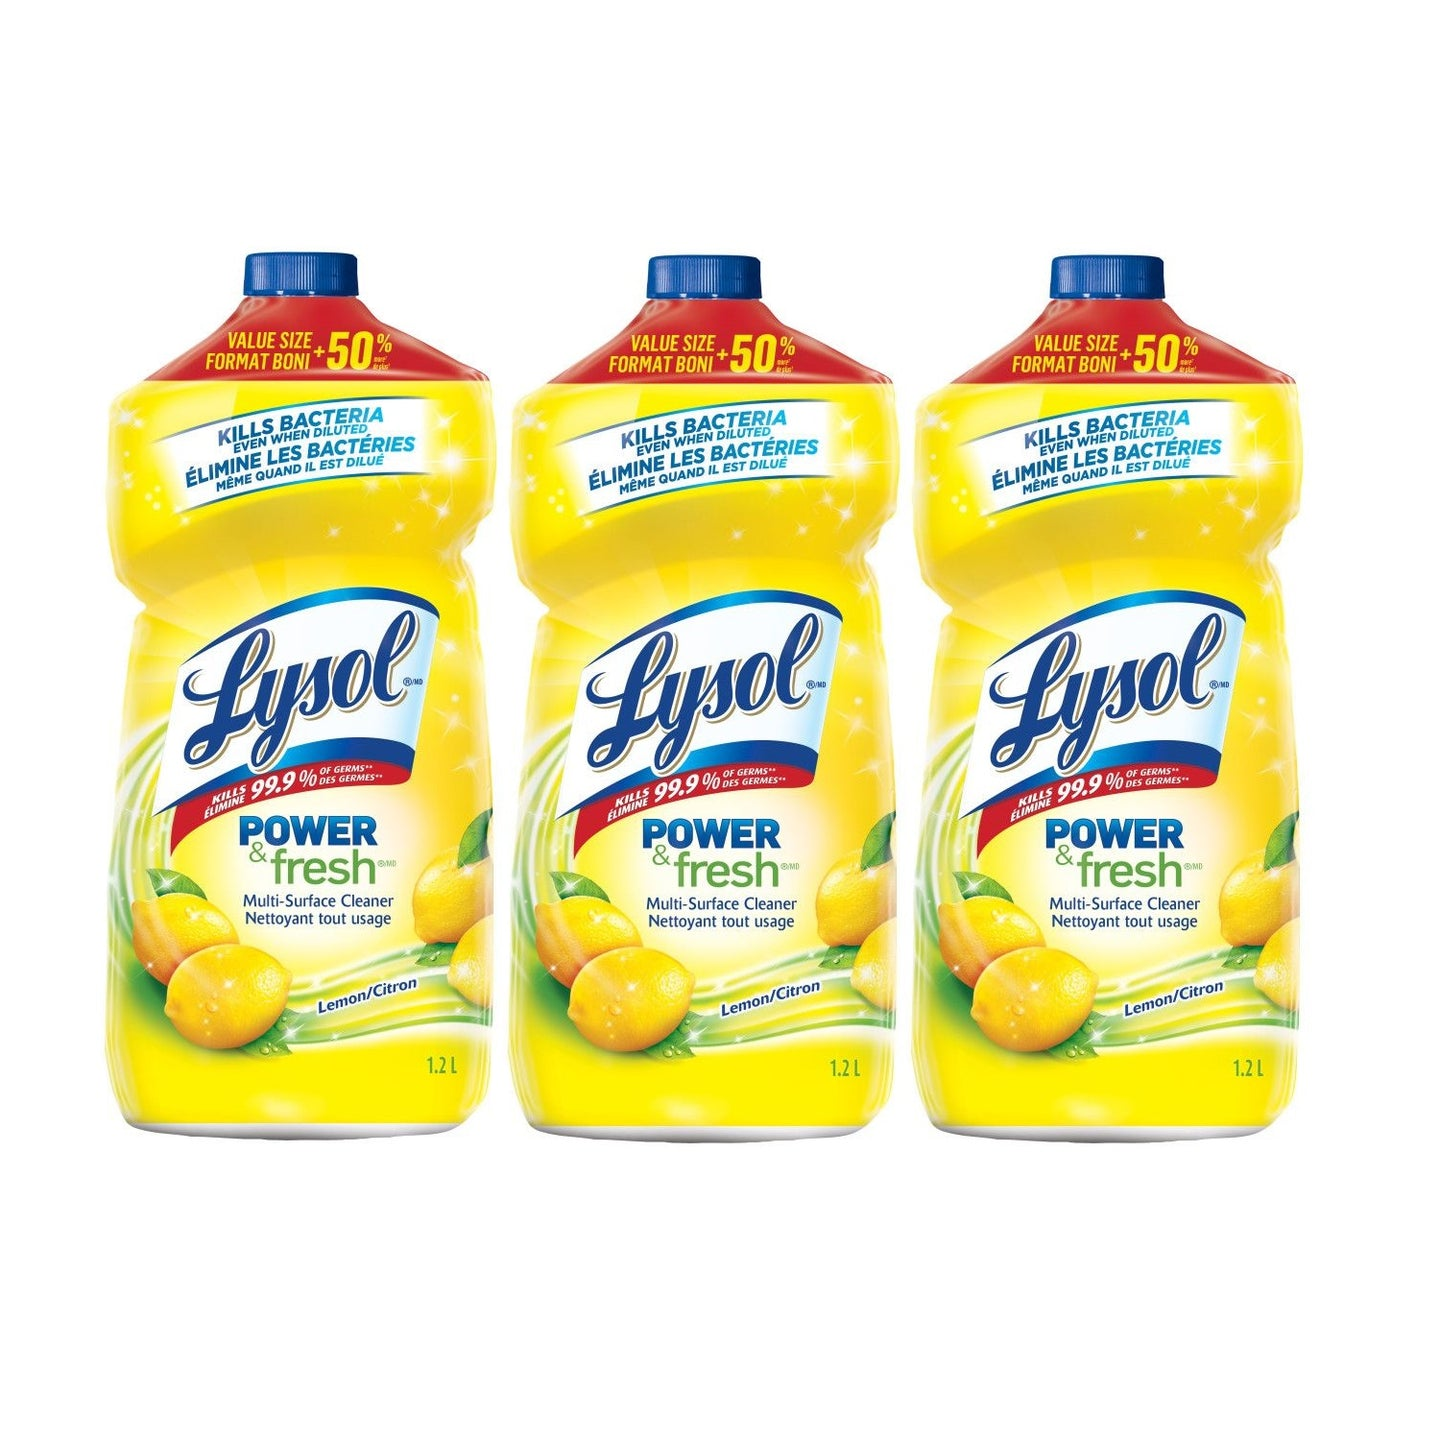 Lysol Power & Fresh Multi-Surface Cleaner, Lemon Scent, 40.6 Ounce (Pack of 3)